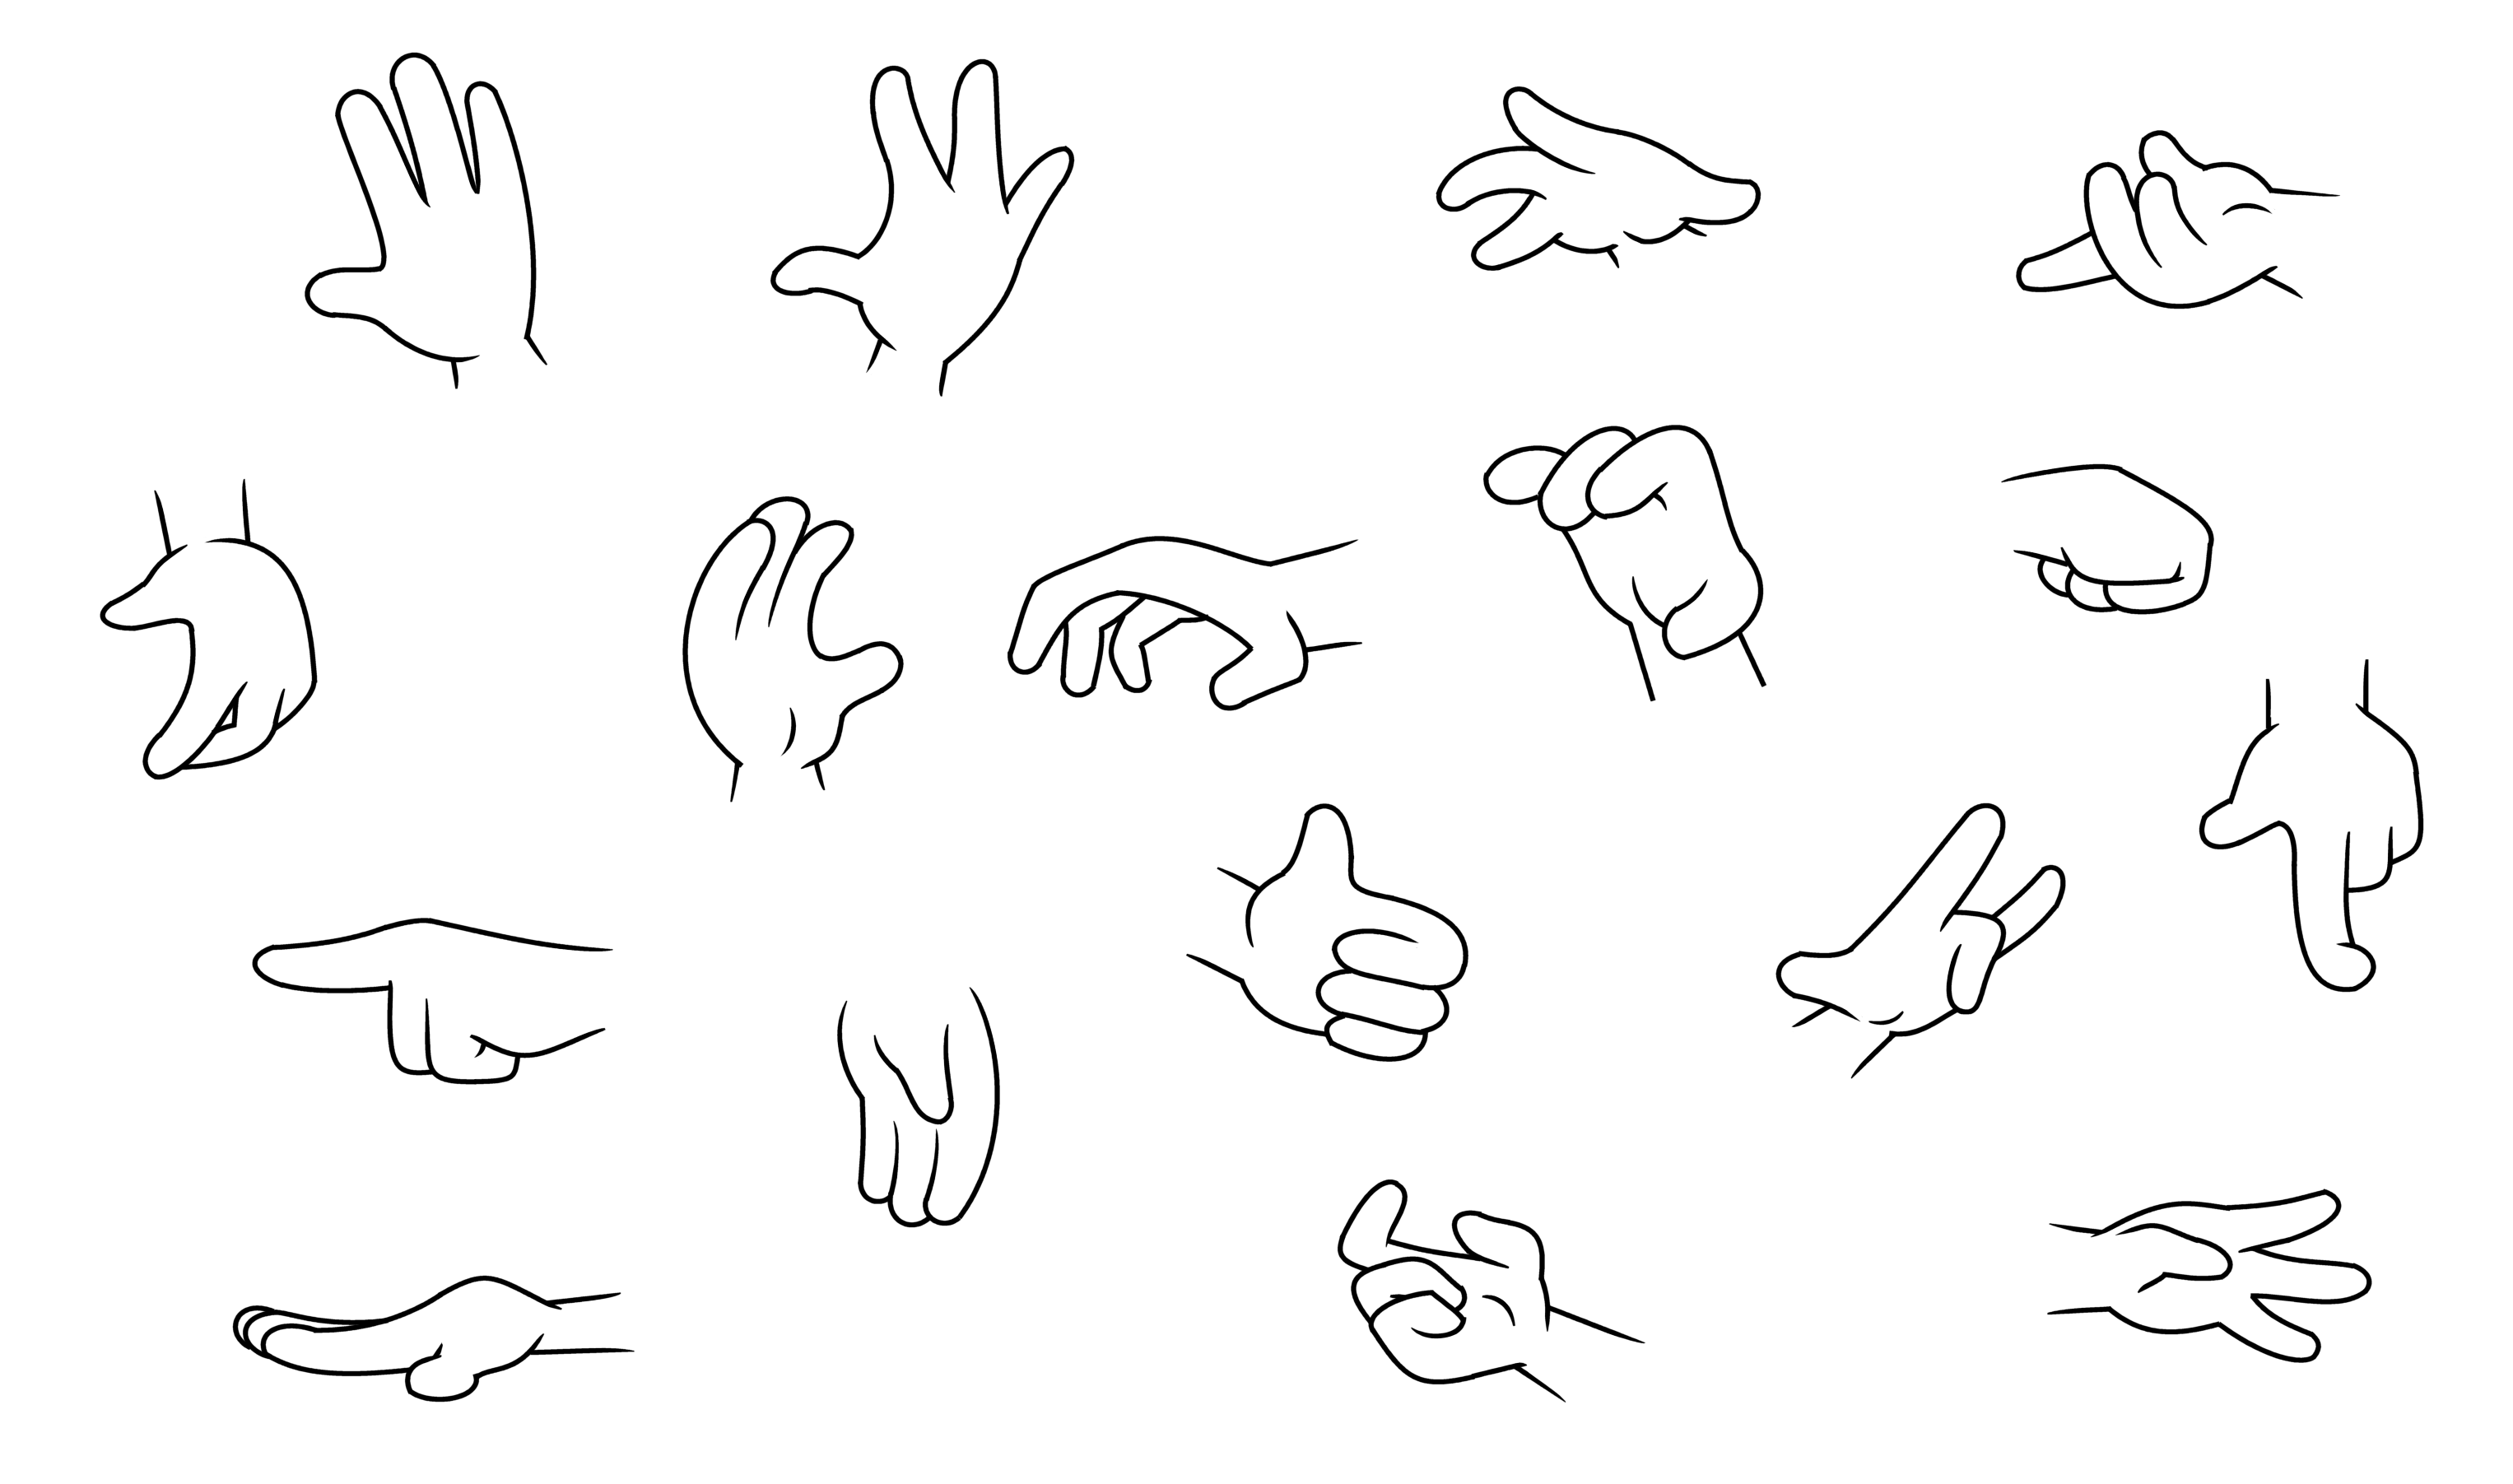 Four Finger Cartoon Hands